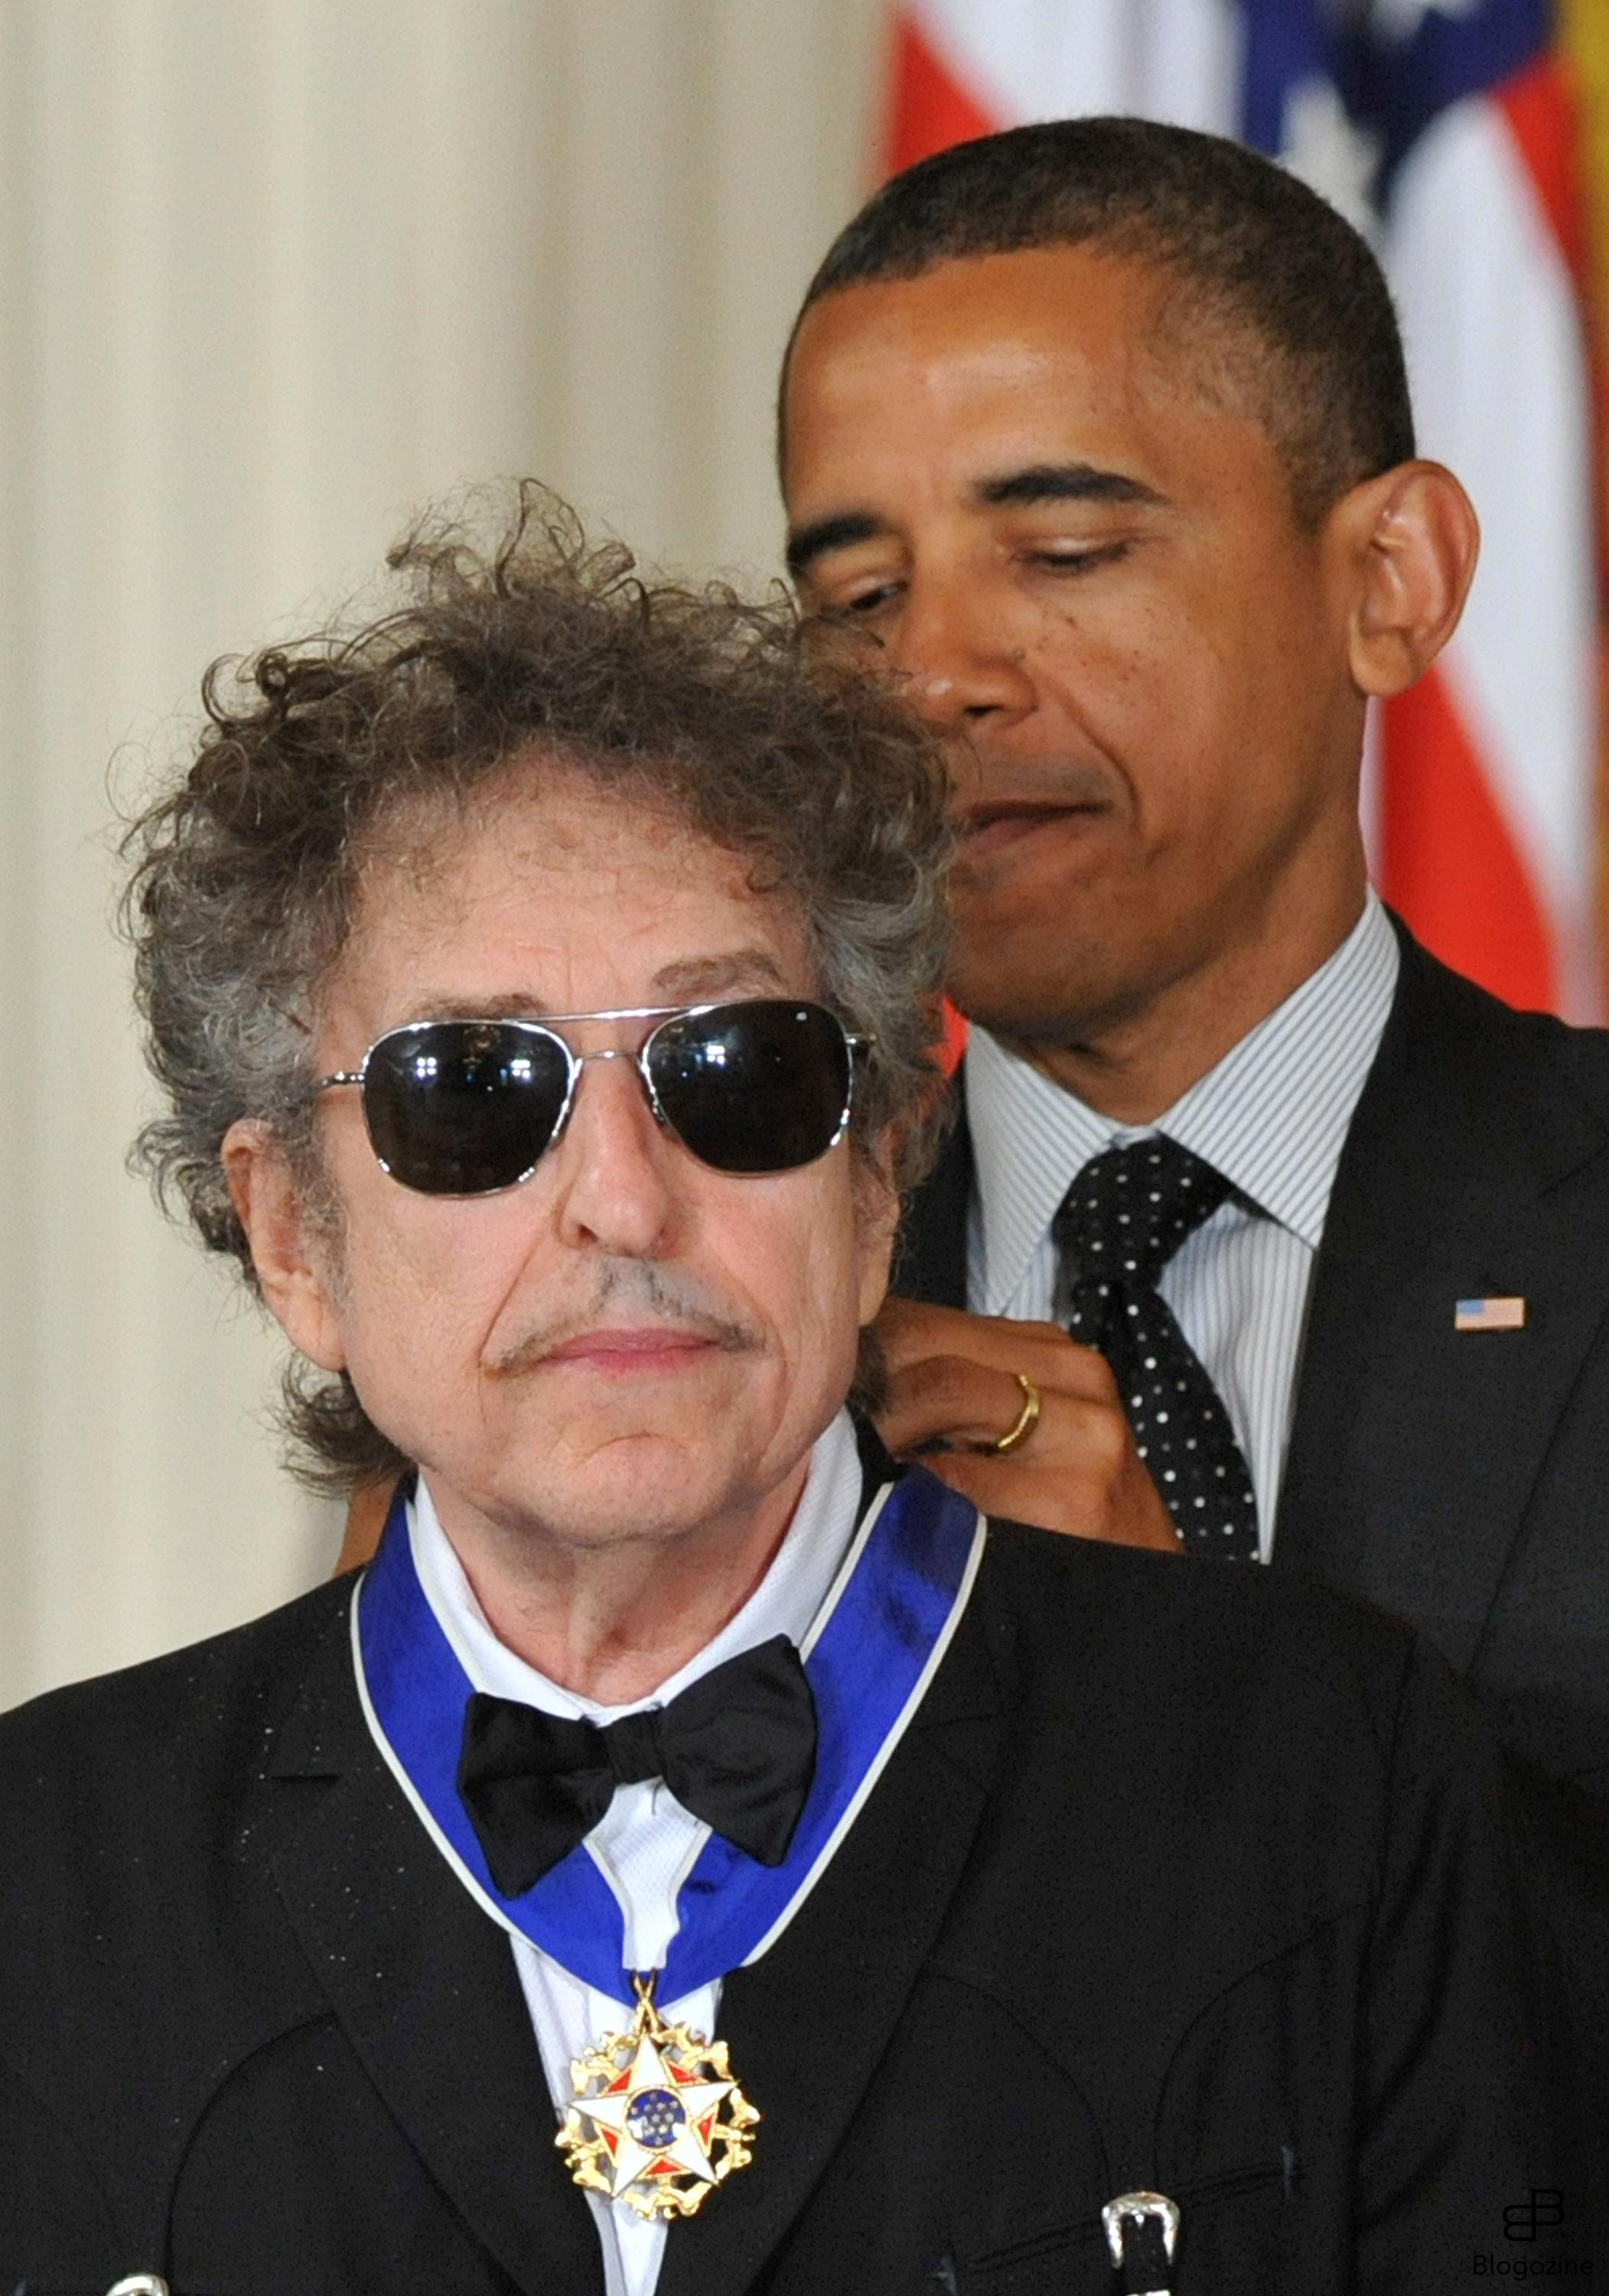 1568523 President Barack Obama awards the the Presidential Medal of Freedom to singer/songwriter Bob Dylan during a ceremony in the East Room at the White House in Washington on May 29, 2012. The Medal of Freedom is our Nation?s highest civilian honor, presented to individuals who have made especially meritorious contributions to the security or national interests of the United States, to world peace, or to cultural or other significant public or private endeavors. UPI/Kevin Dietsch Photo: KEIVN DIETSCH/UPI Code: 4056/WAP20120529304 COPYRIGHT STELLA PICTURES Photo: KEIVN DIETSCH/UPI Code: 4056/WAP20120529304 COPYRIGHT STELLA PICTURES